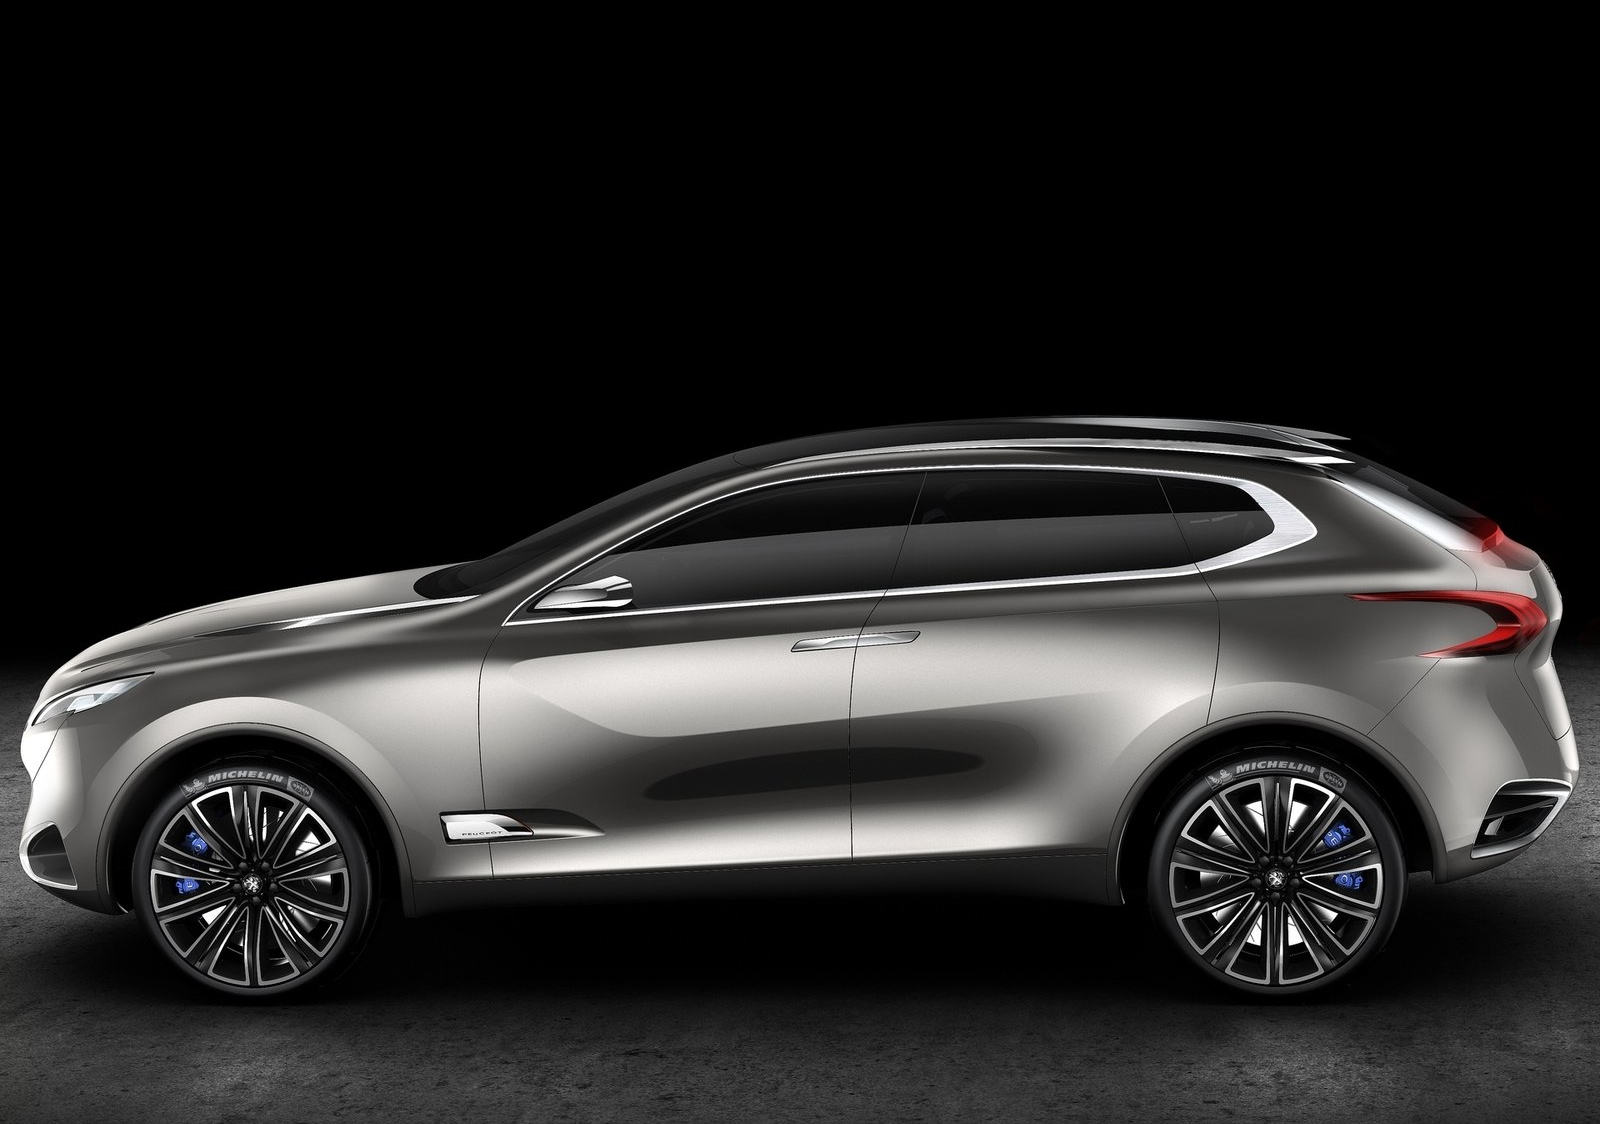 Peugeot 6008 7-Seat Crossover Confirmed for 2016 - autoevolution